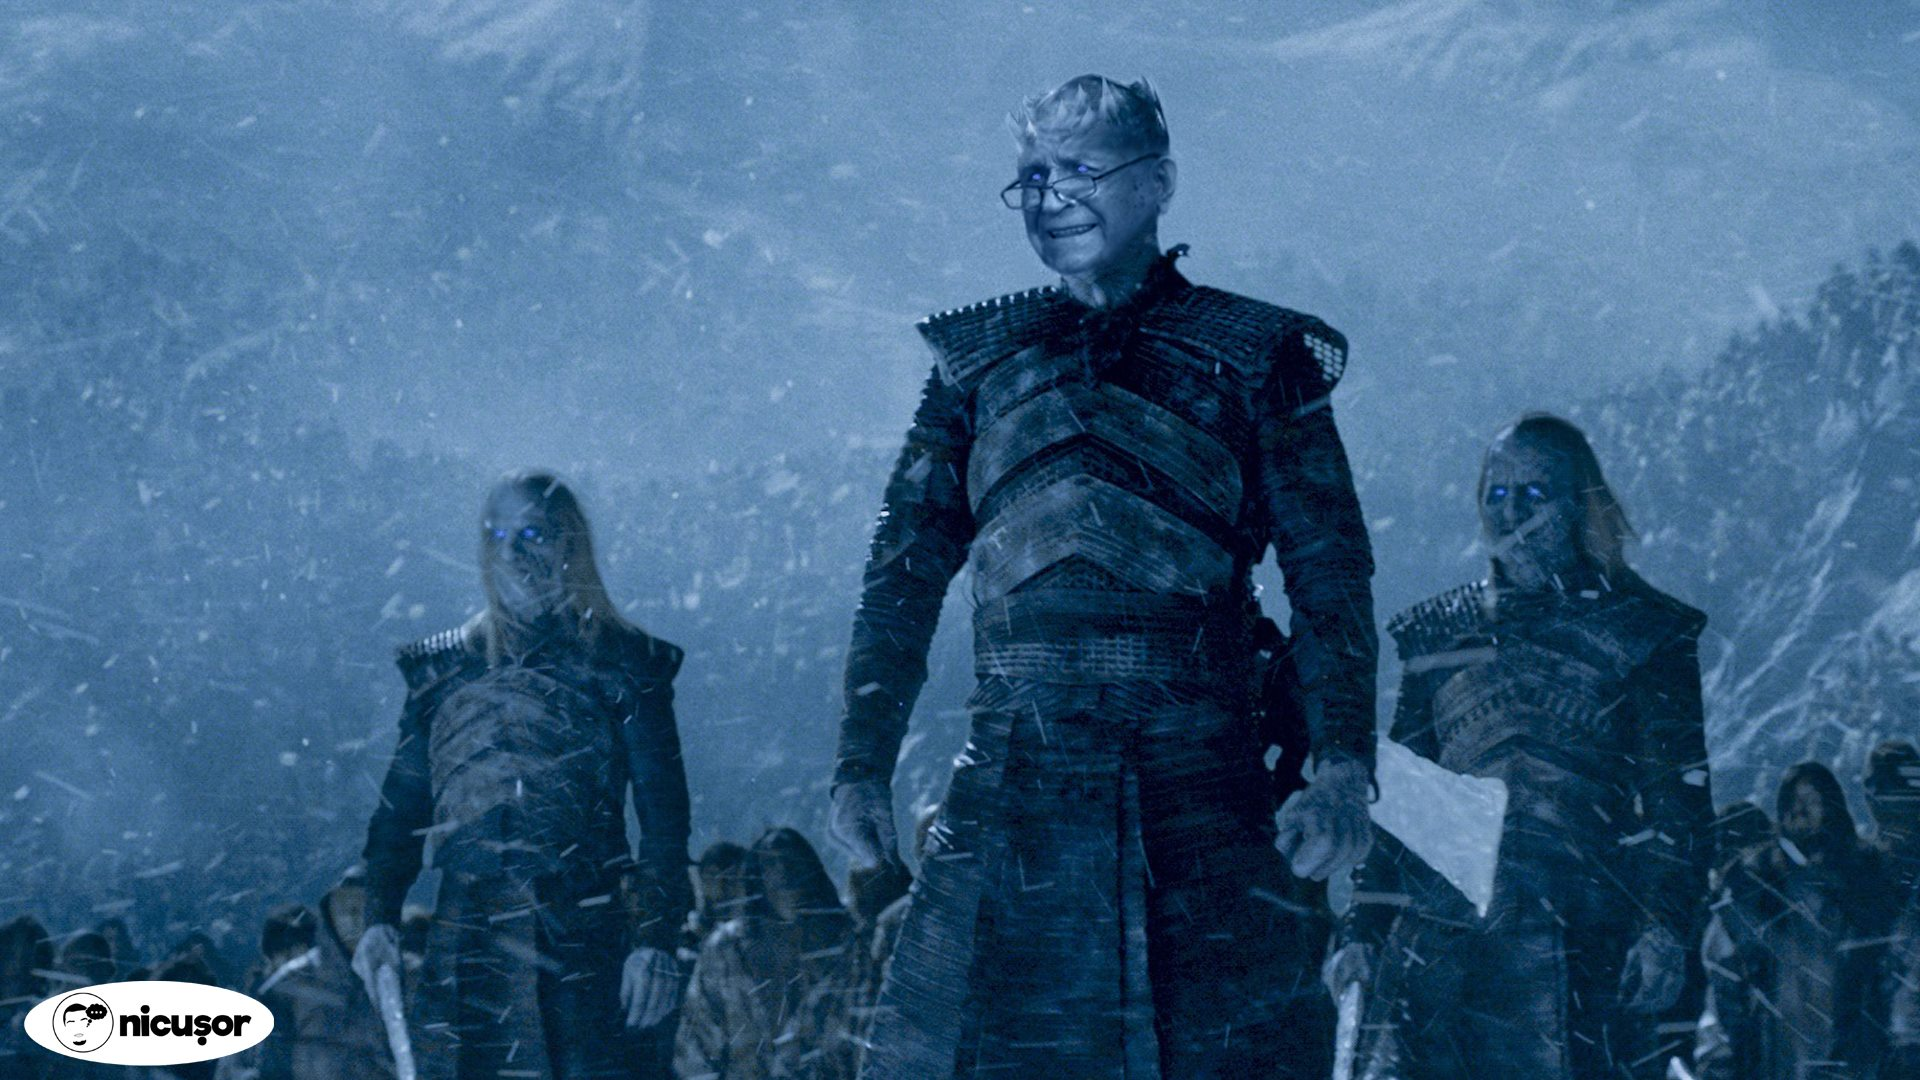 Game of Thrones Ion Iliescu